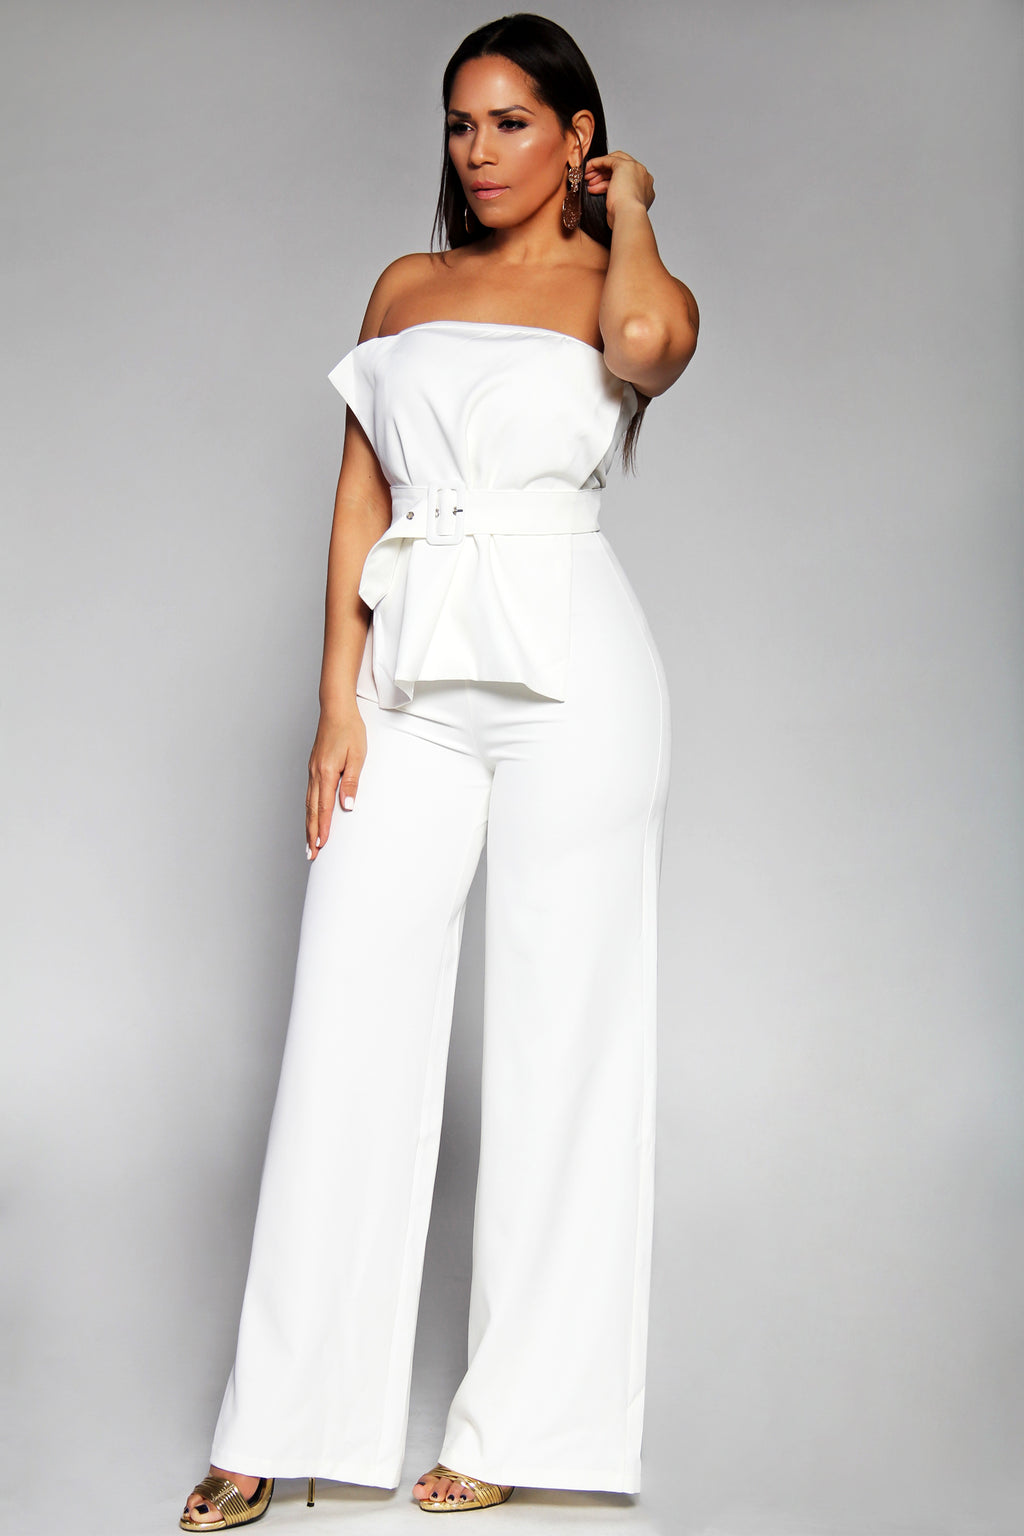 Leilani Elegant Strapless Belted Two Piece Belted Pant Set